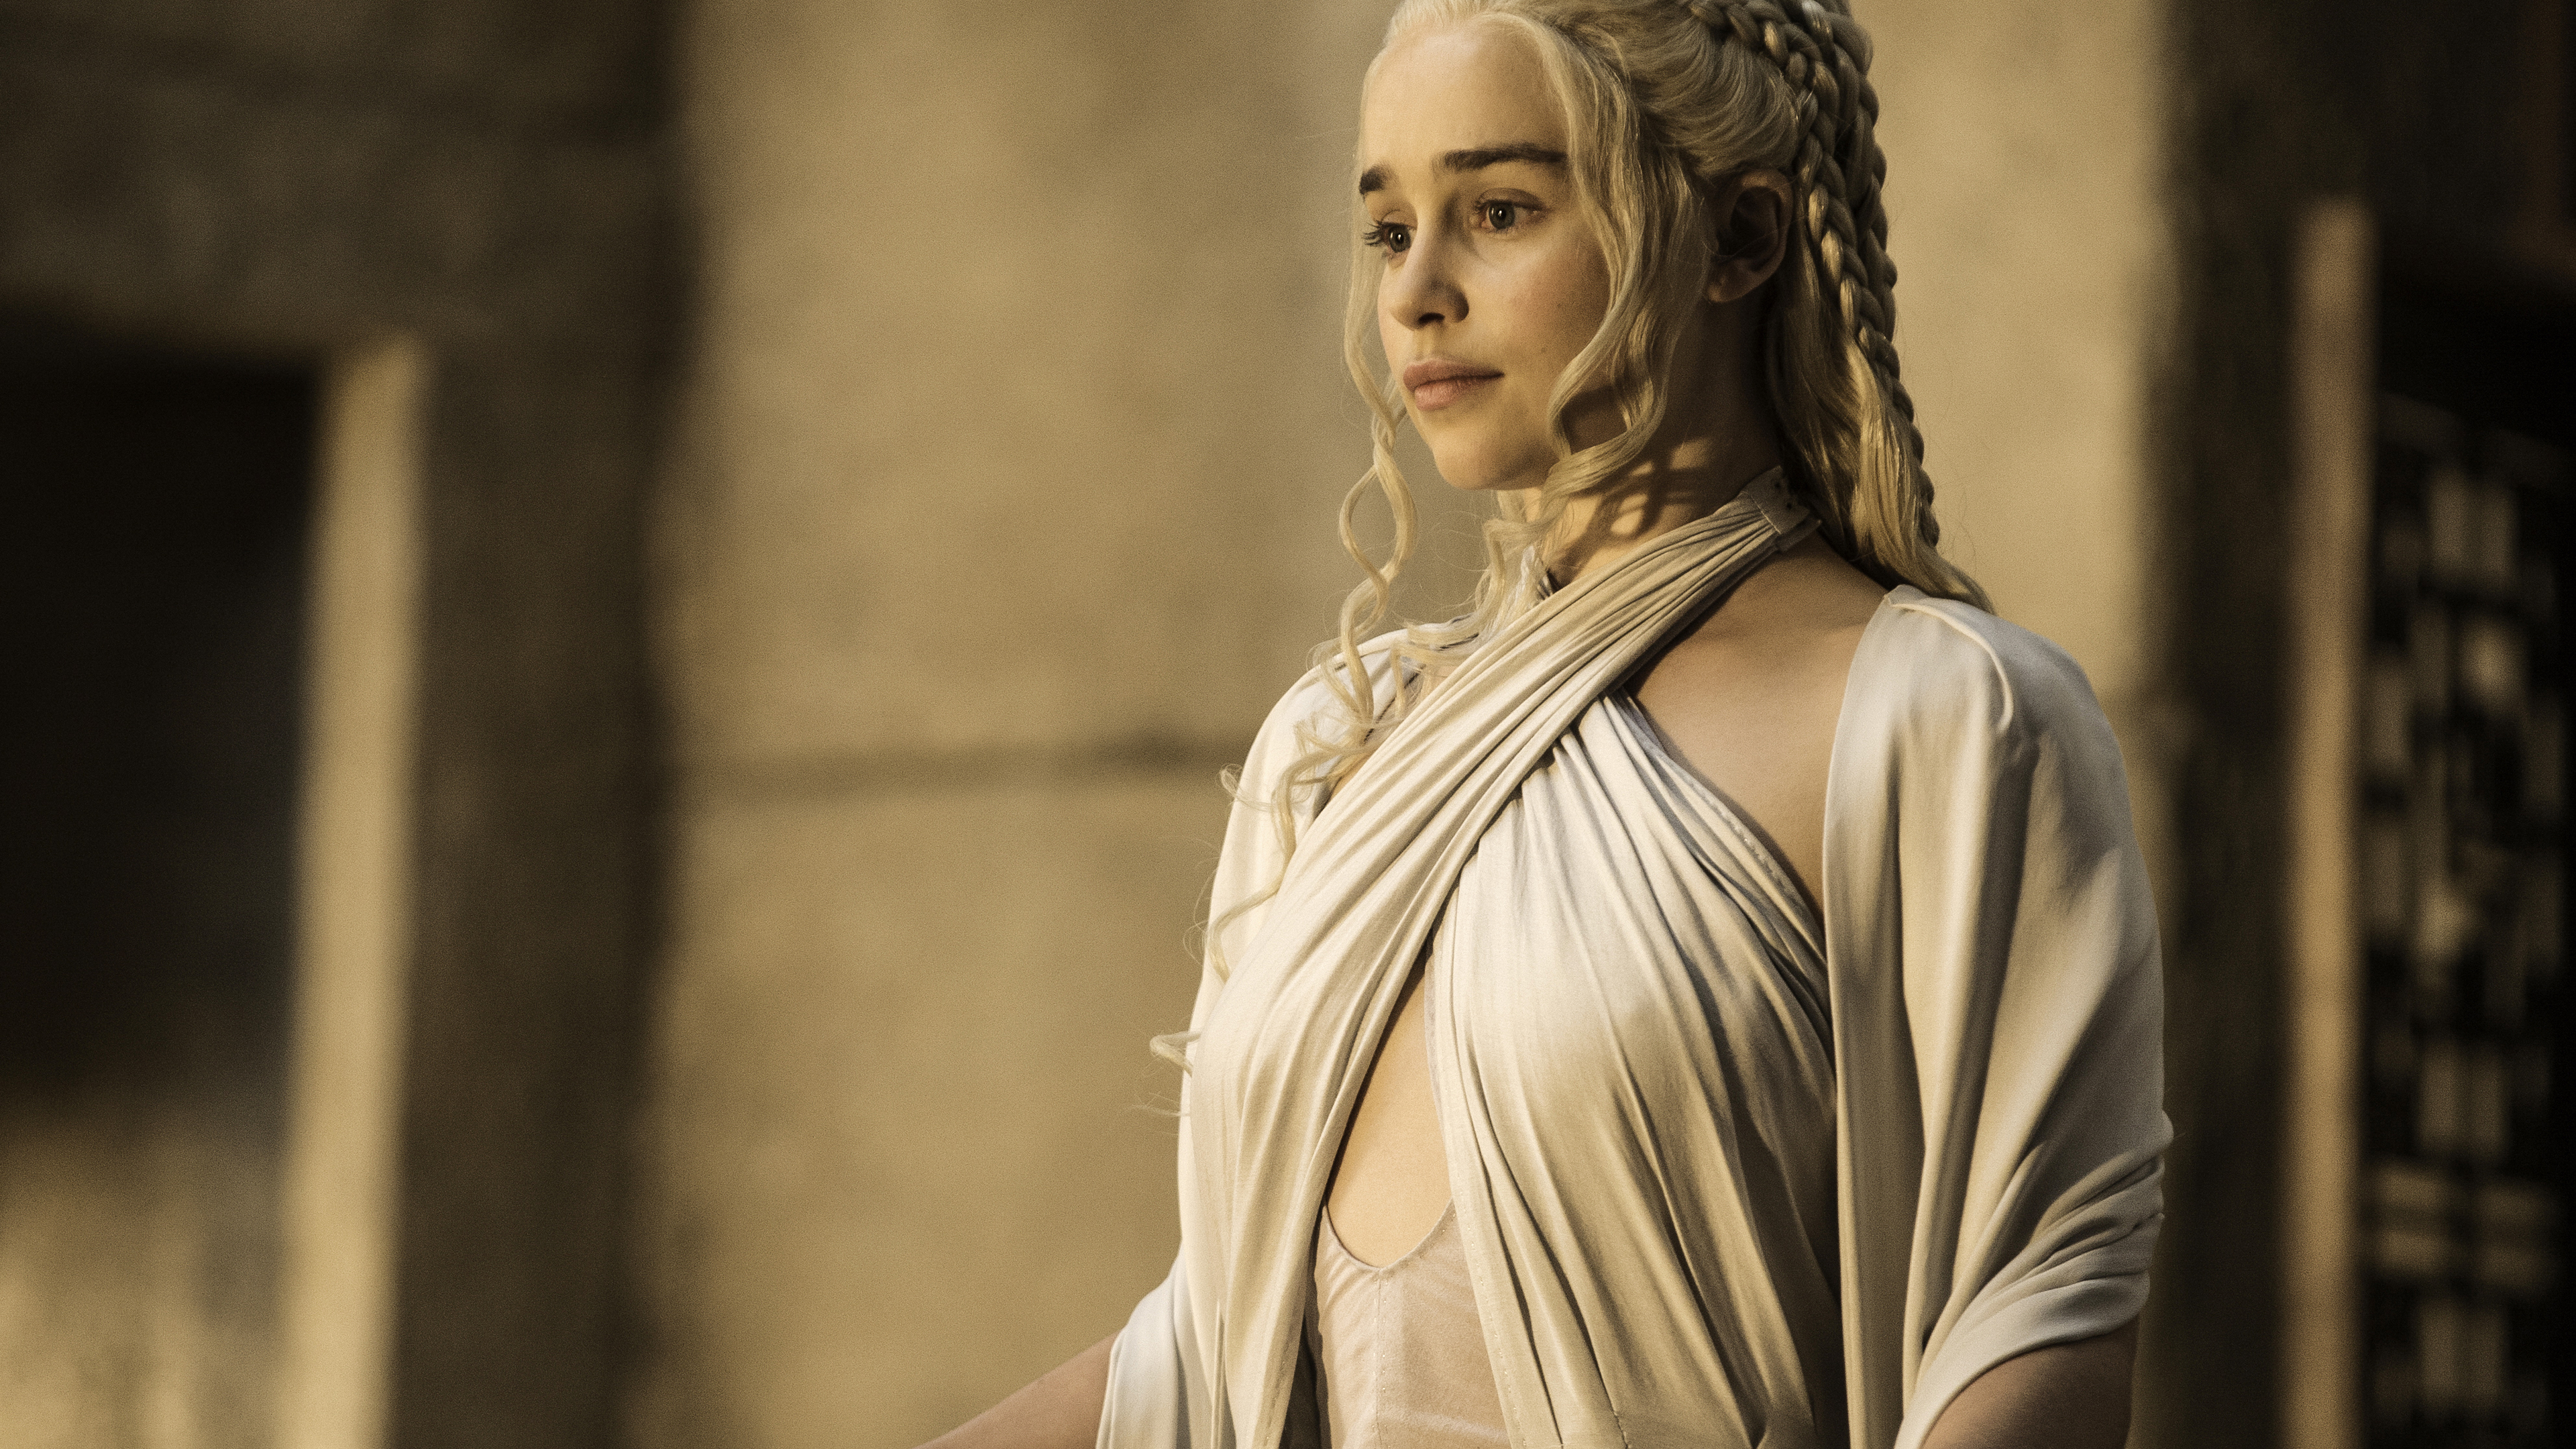 daenerys targaryen 2019 4k 1553073272 - Daenerys Targaryen 2019 4k - tv shows wallpapers, hd-wallpapers, game of thrones wallpapers, daenerys targaryen wallpapers, 4k-wallpapers